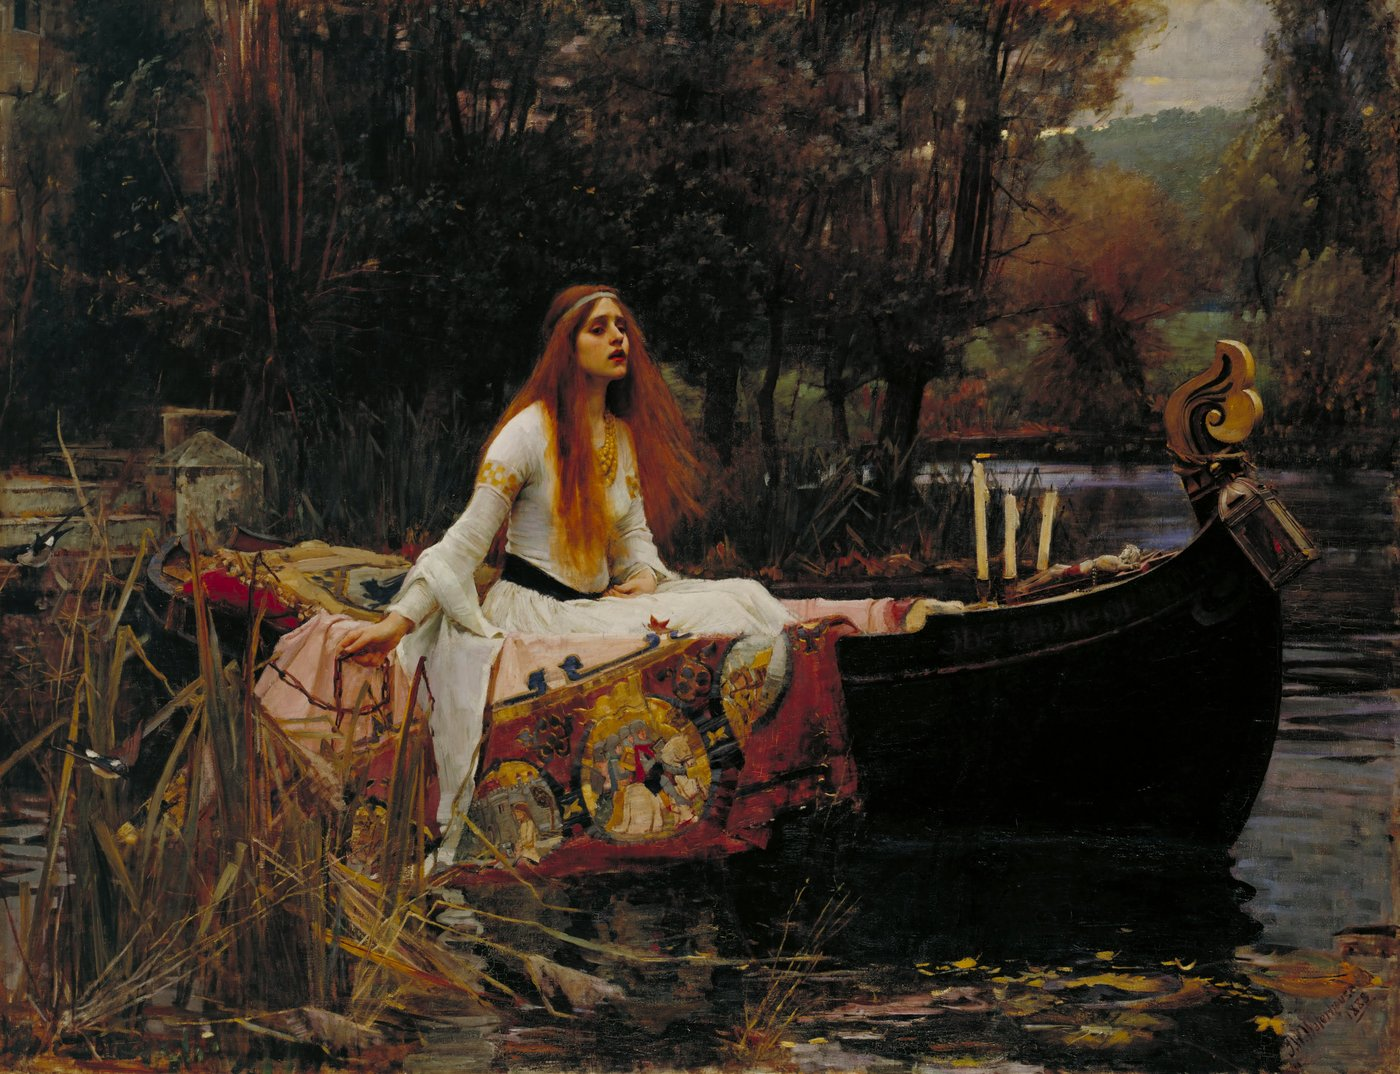 John William Waterhouse background